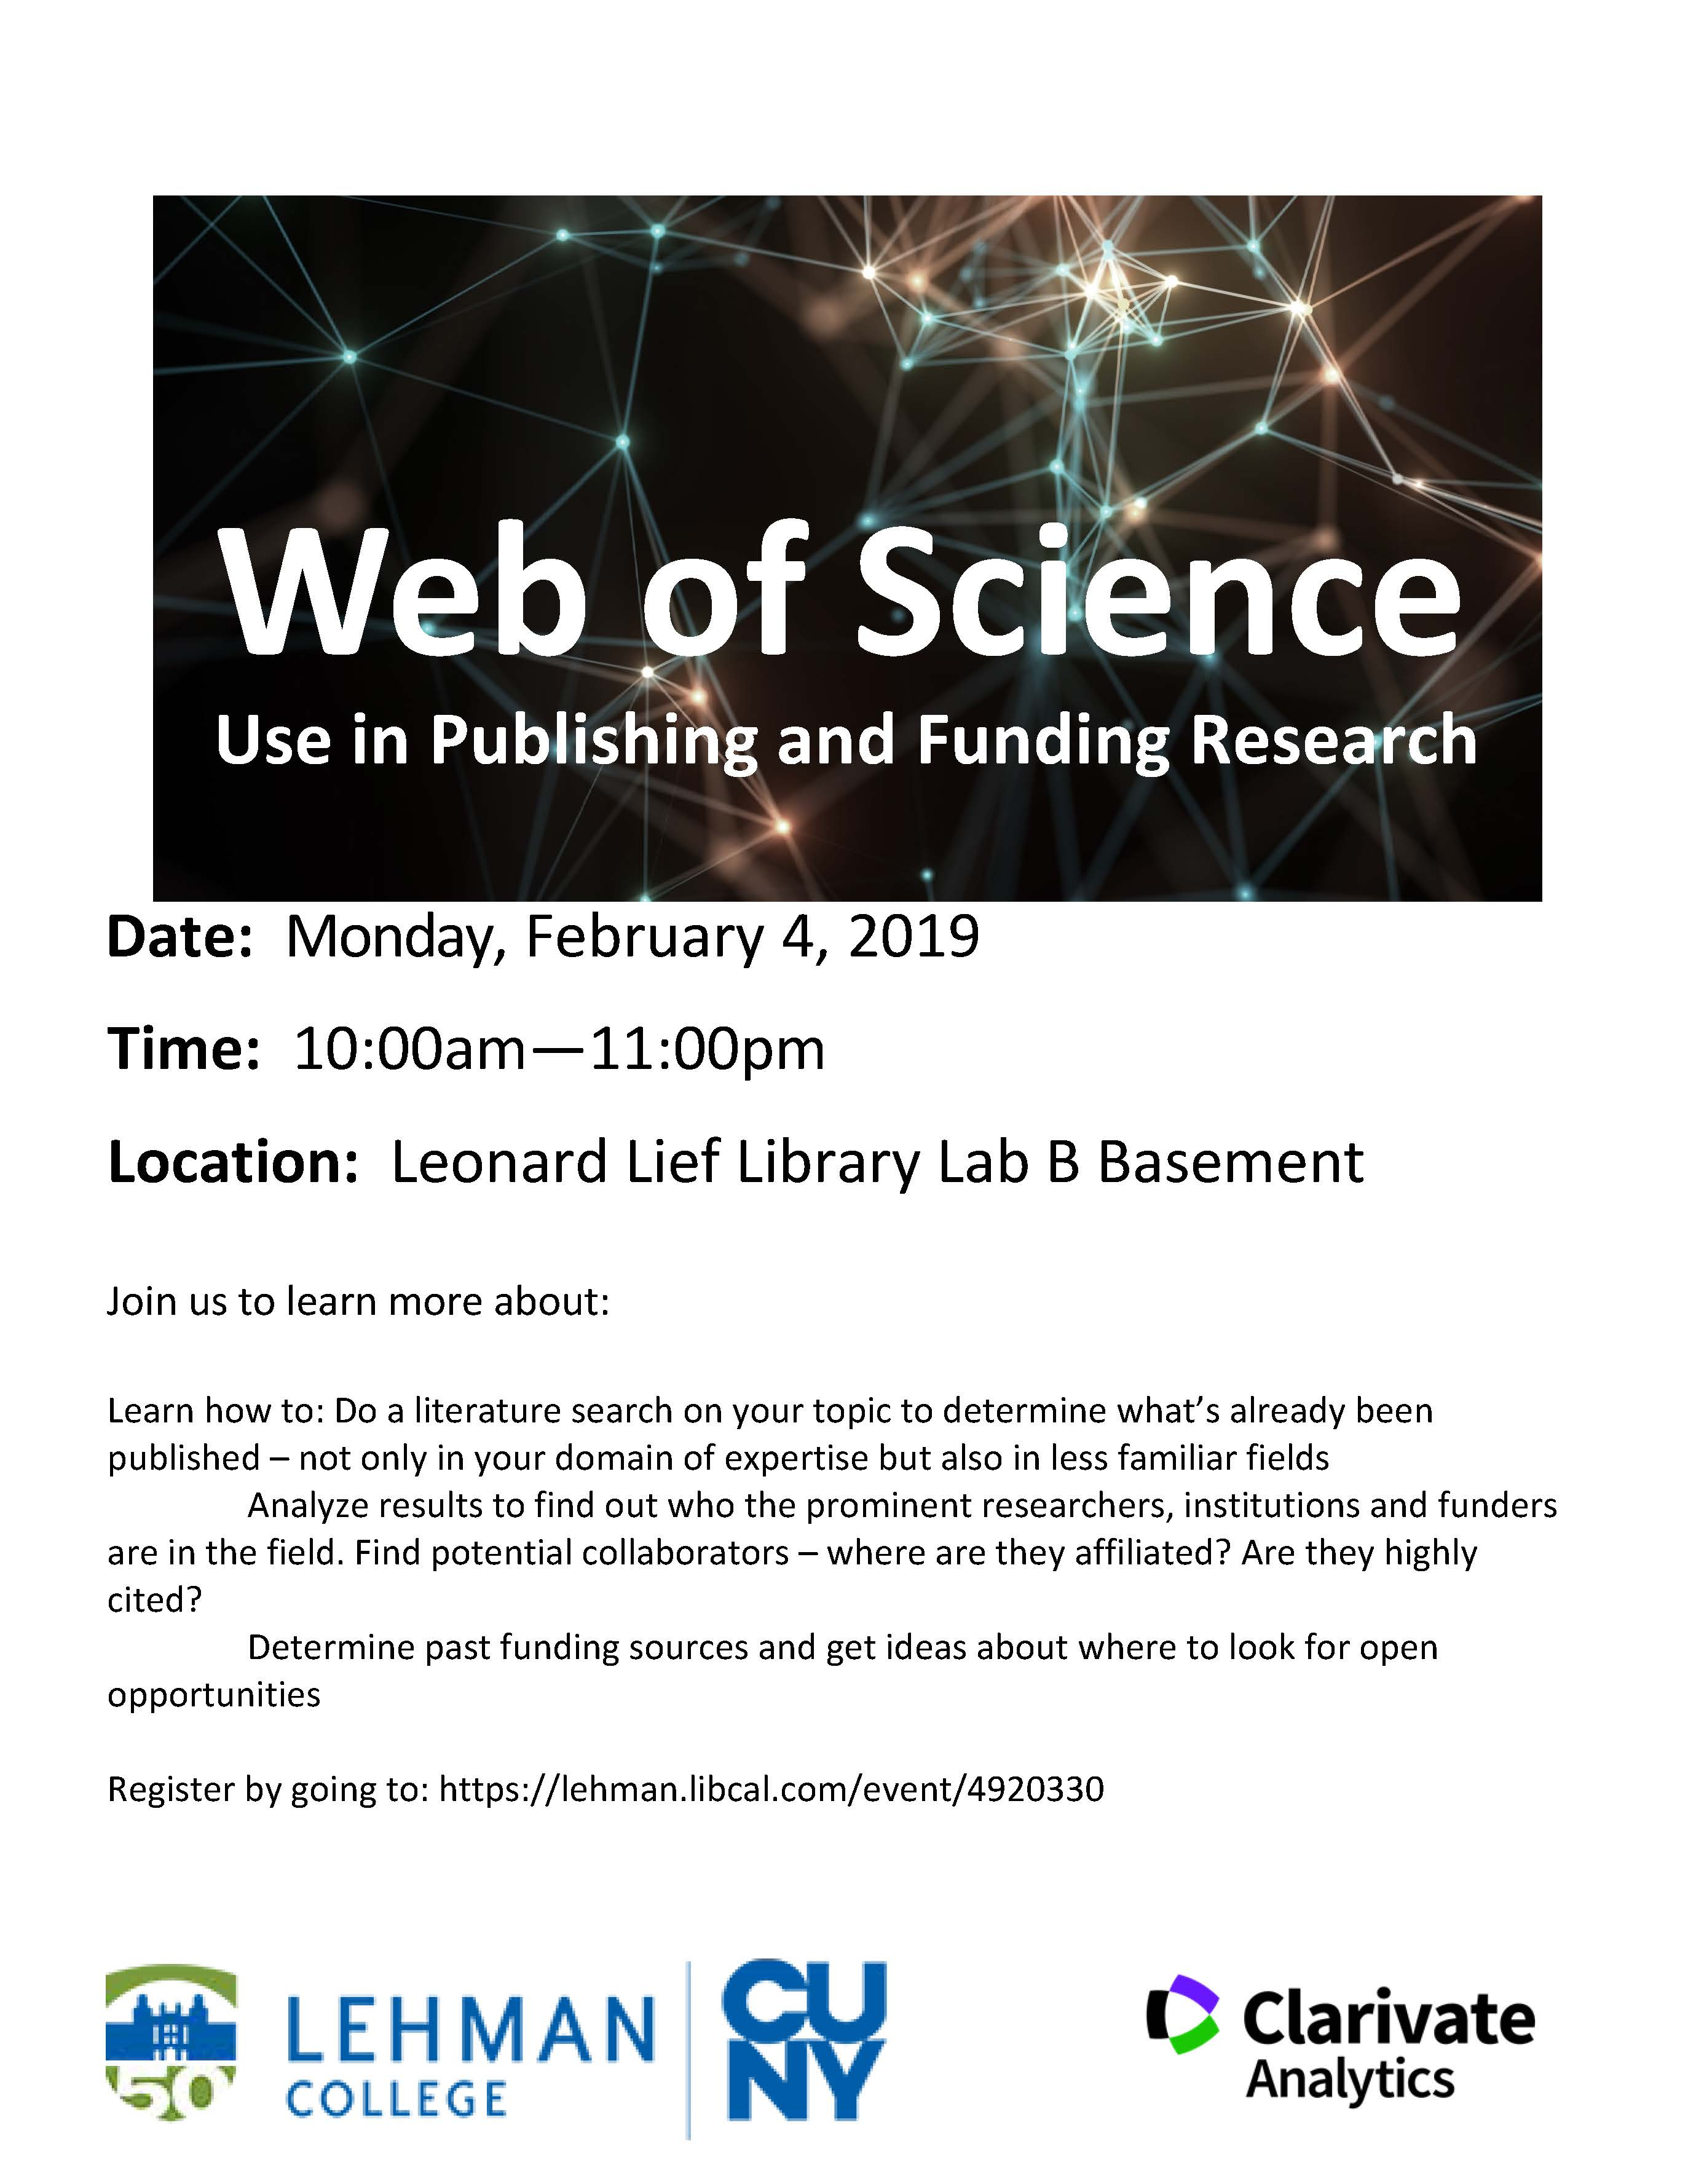 Using Web of Science to Publish in your Discipline and Fund your Research